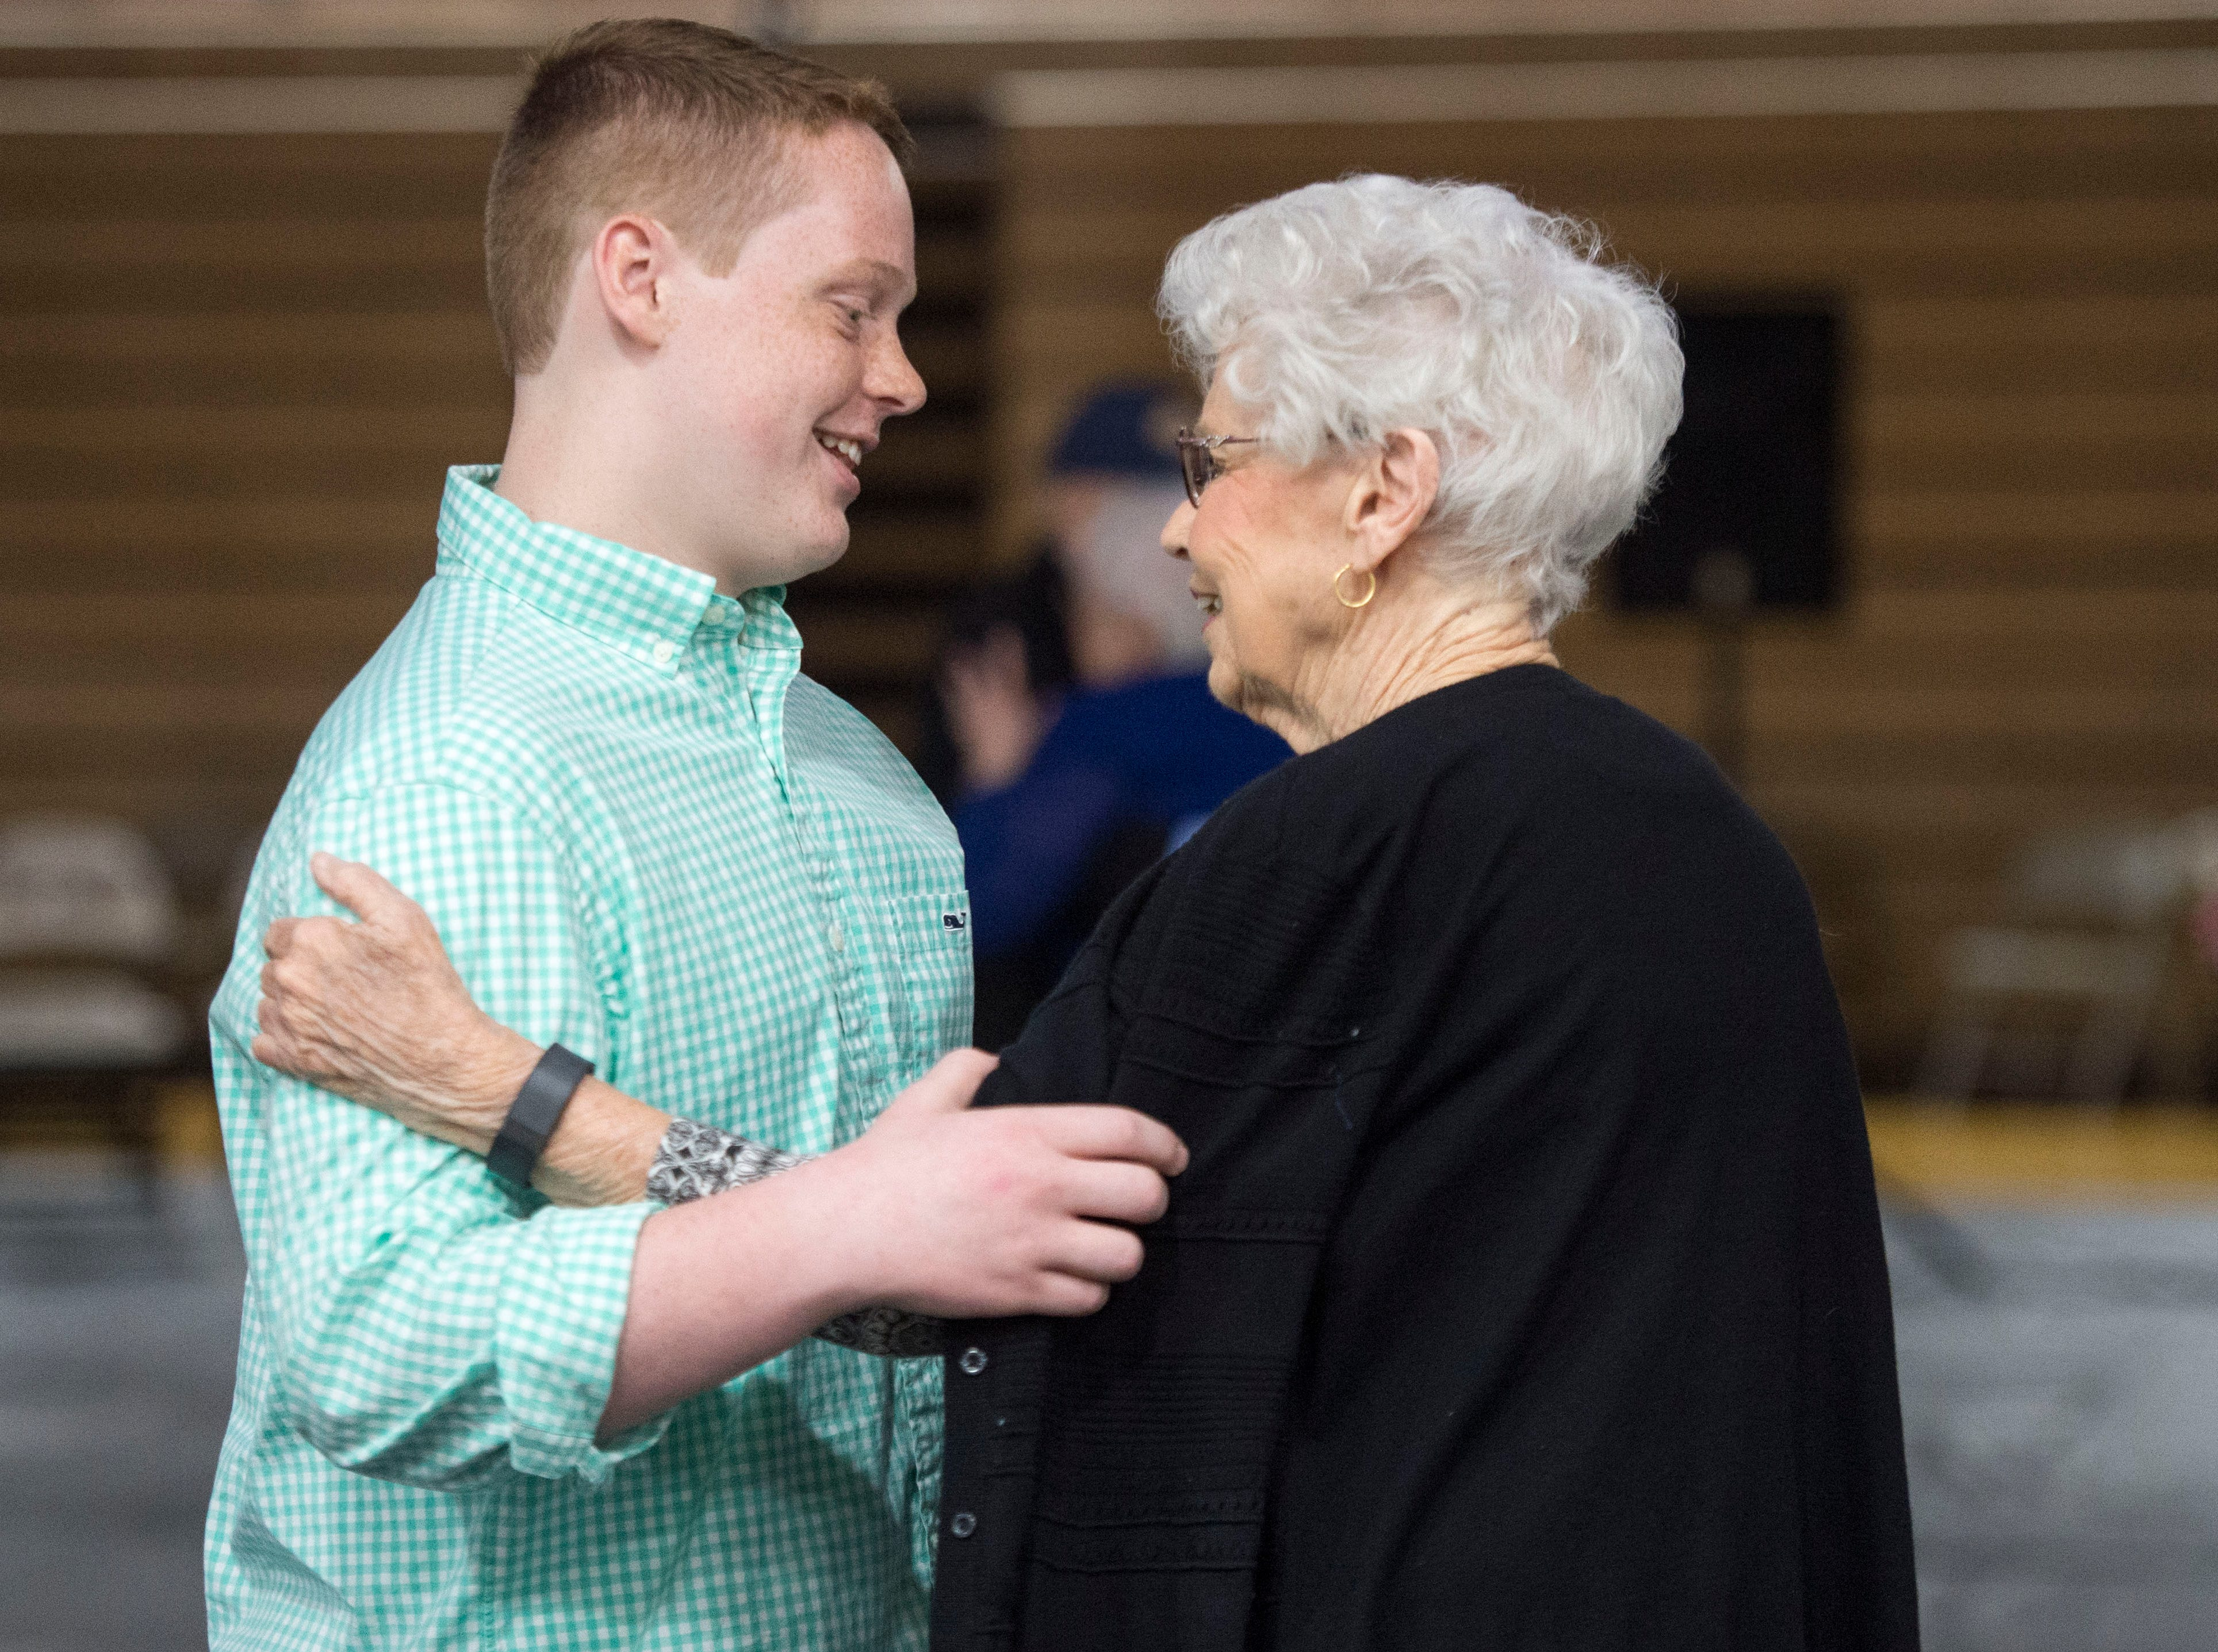 Henderson County High School Freshman Will Forker, left, dances with Dayadre Daybolt, right, during the 2019 Senior Citizen Prom Monday, April 15, 2019.